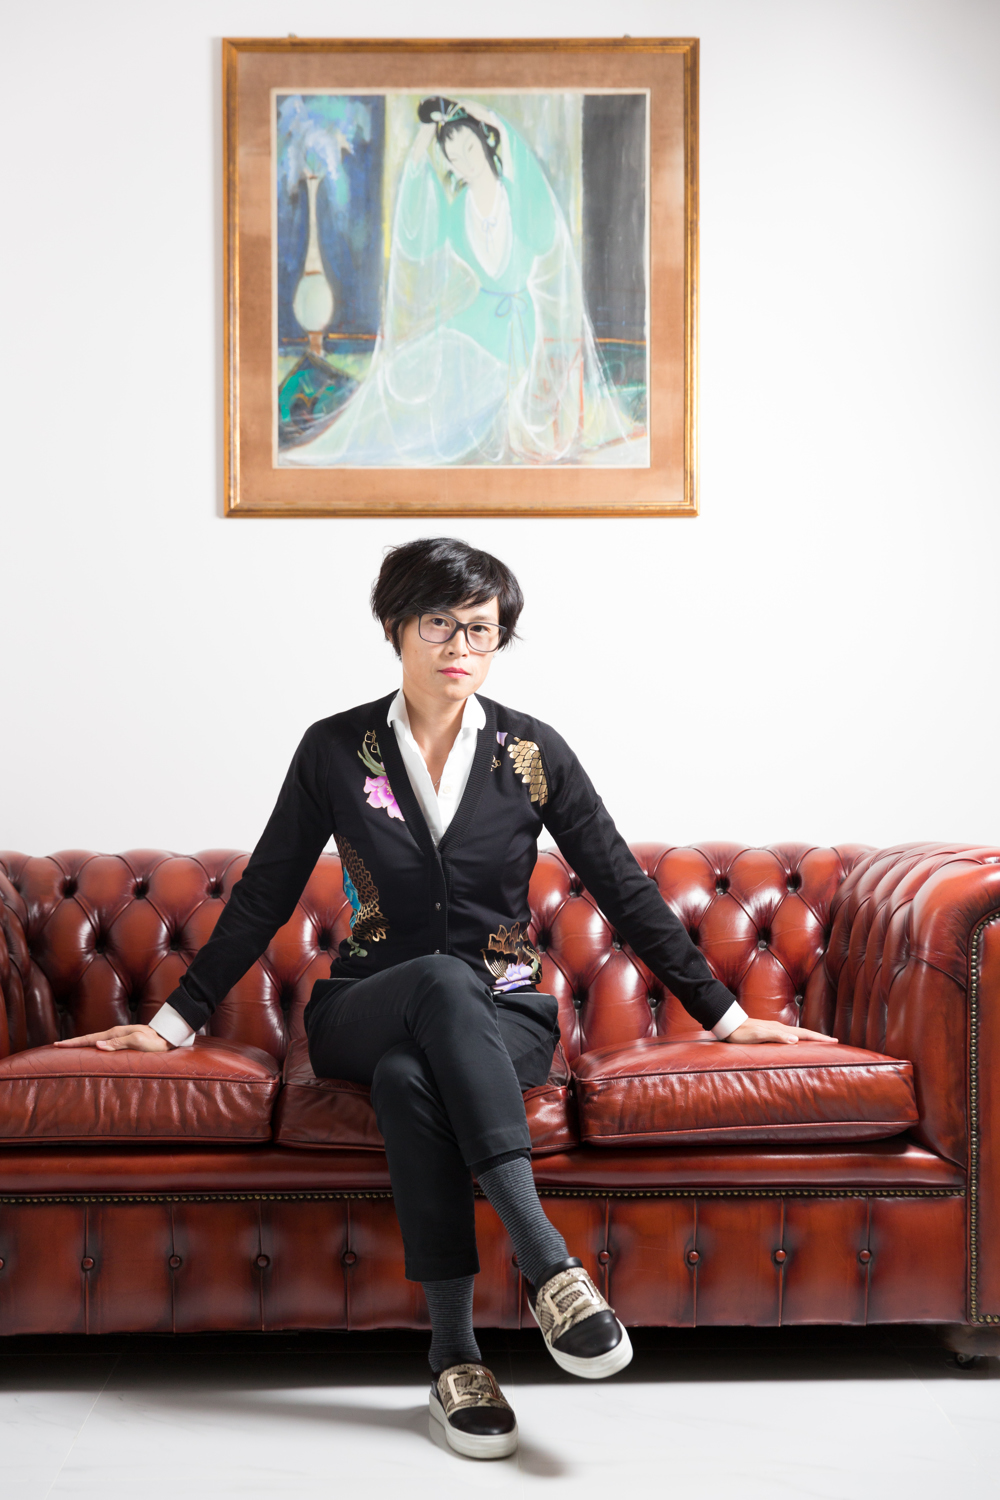 HK Socialite and LGBT advocate Gigi Chao for Financial Times